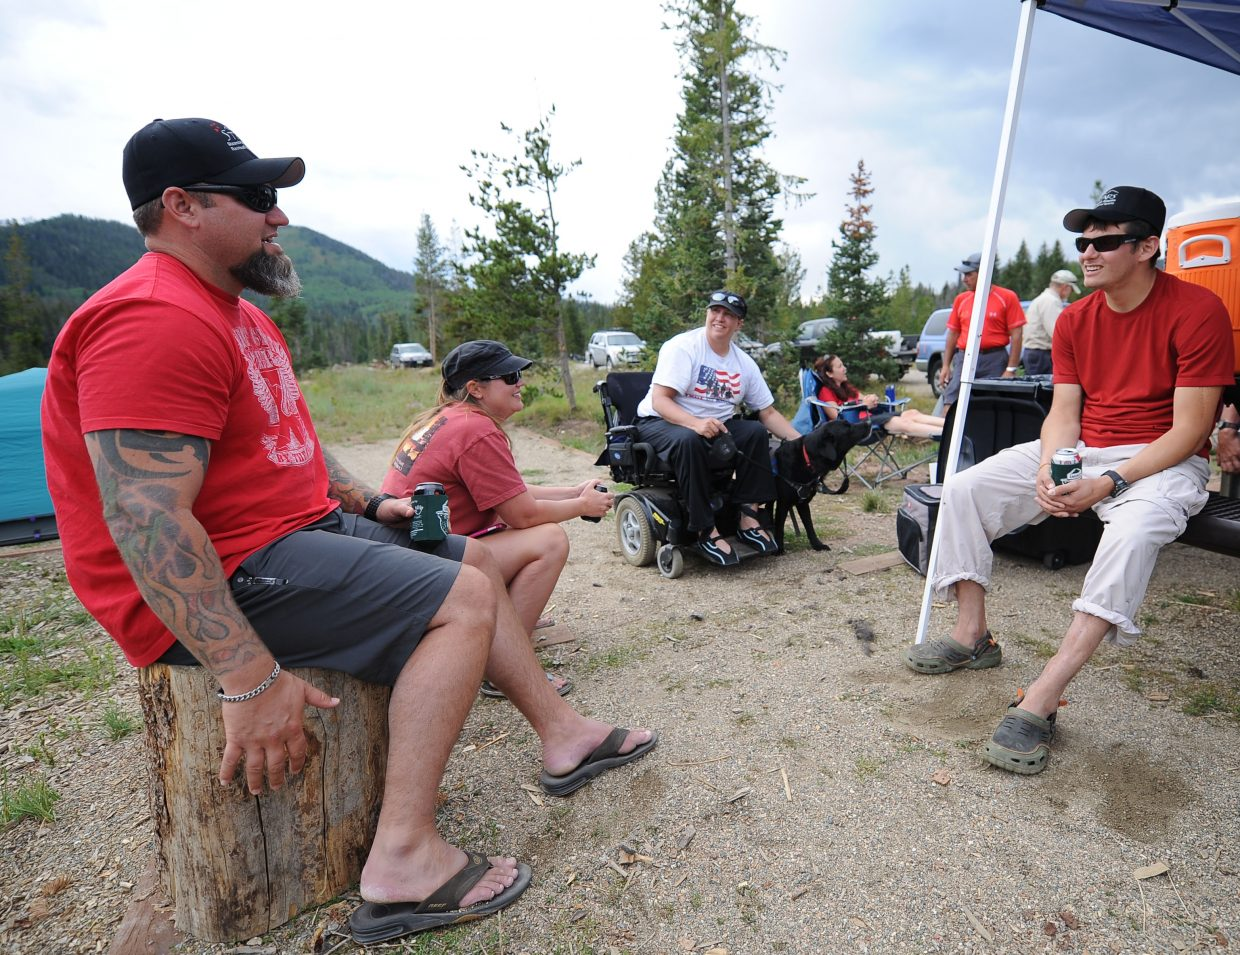 Wade Sharbono, from left, Diana Sharbono, Kerry Conway and Aaron Bugg share stories while the fire warms up during the STARS and Stripes Heroes Camp at Hahn's Peak Lake last month near Steamboat Springs. The camp drew about a dozen veterans to the area for camping, water skiing and simply relaxing.